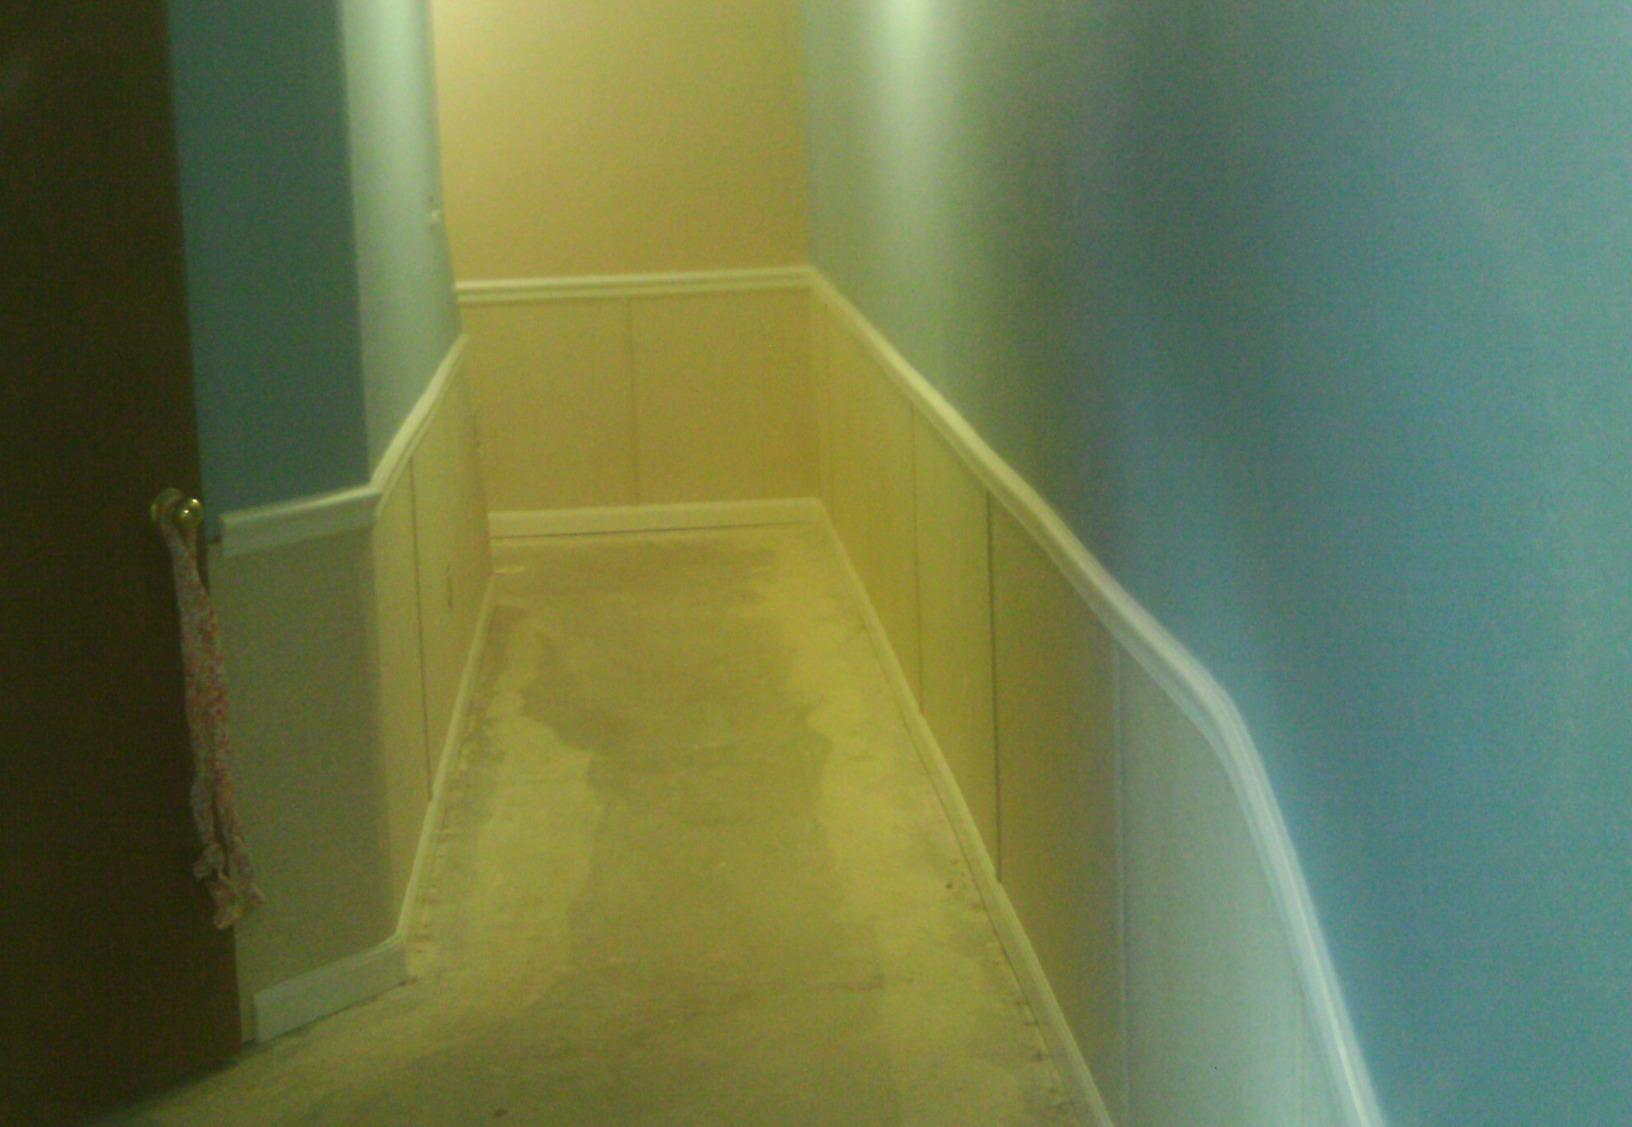 After the installation of EverLast, the basement has a completely different look and feel.